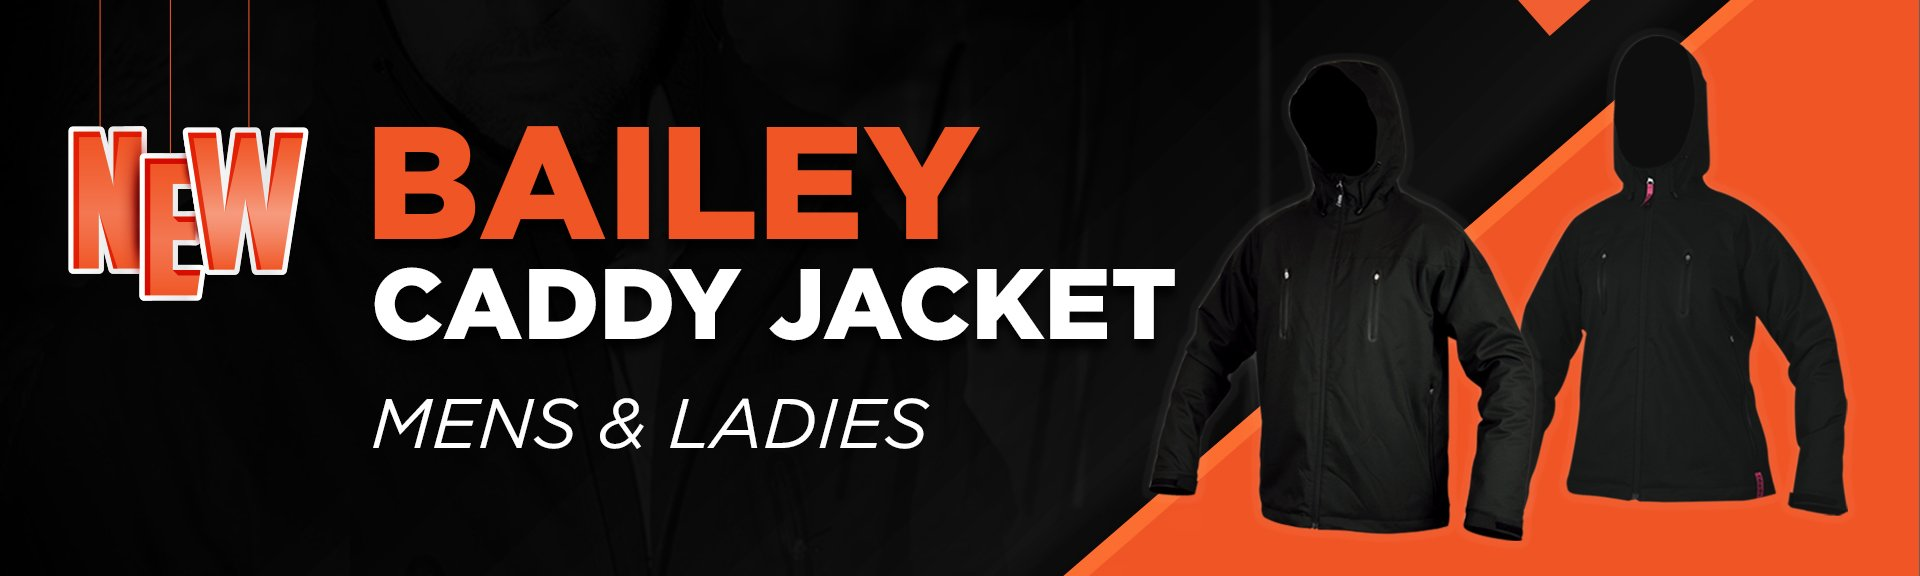 DUDE Clothing NEW Bailey Caddy Jacket Mens and Ladies Pre-Order Now